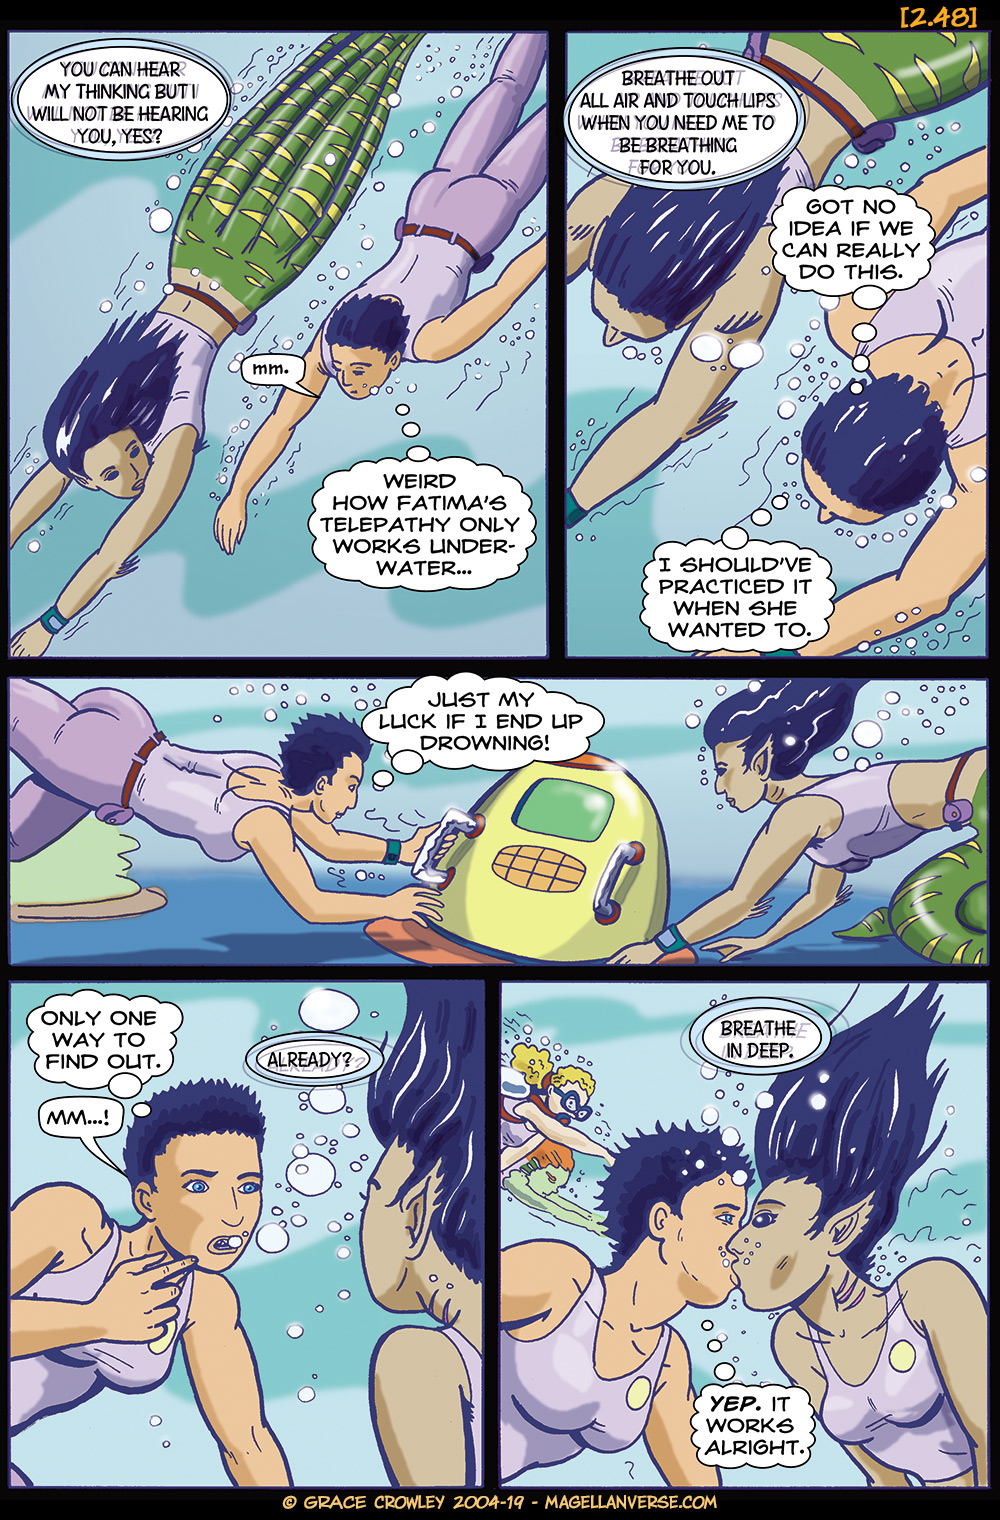 Page 2.48